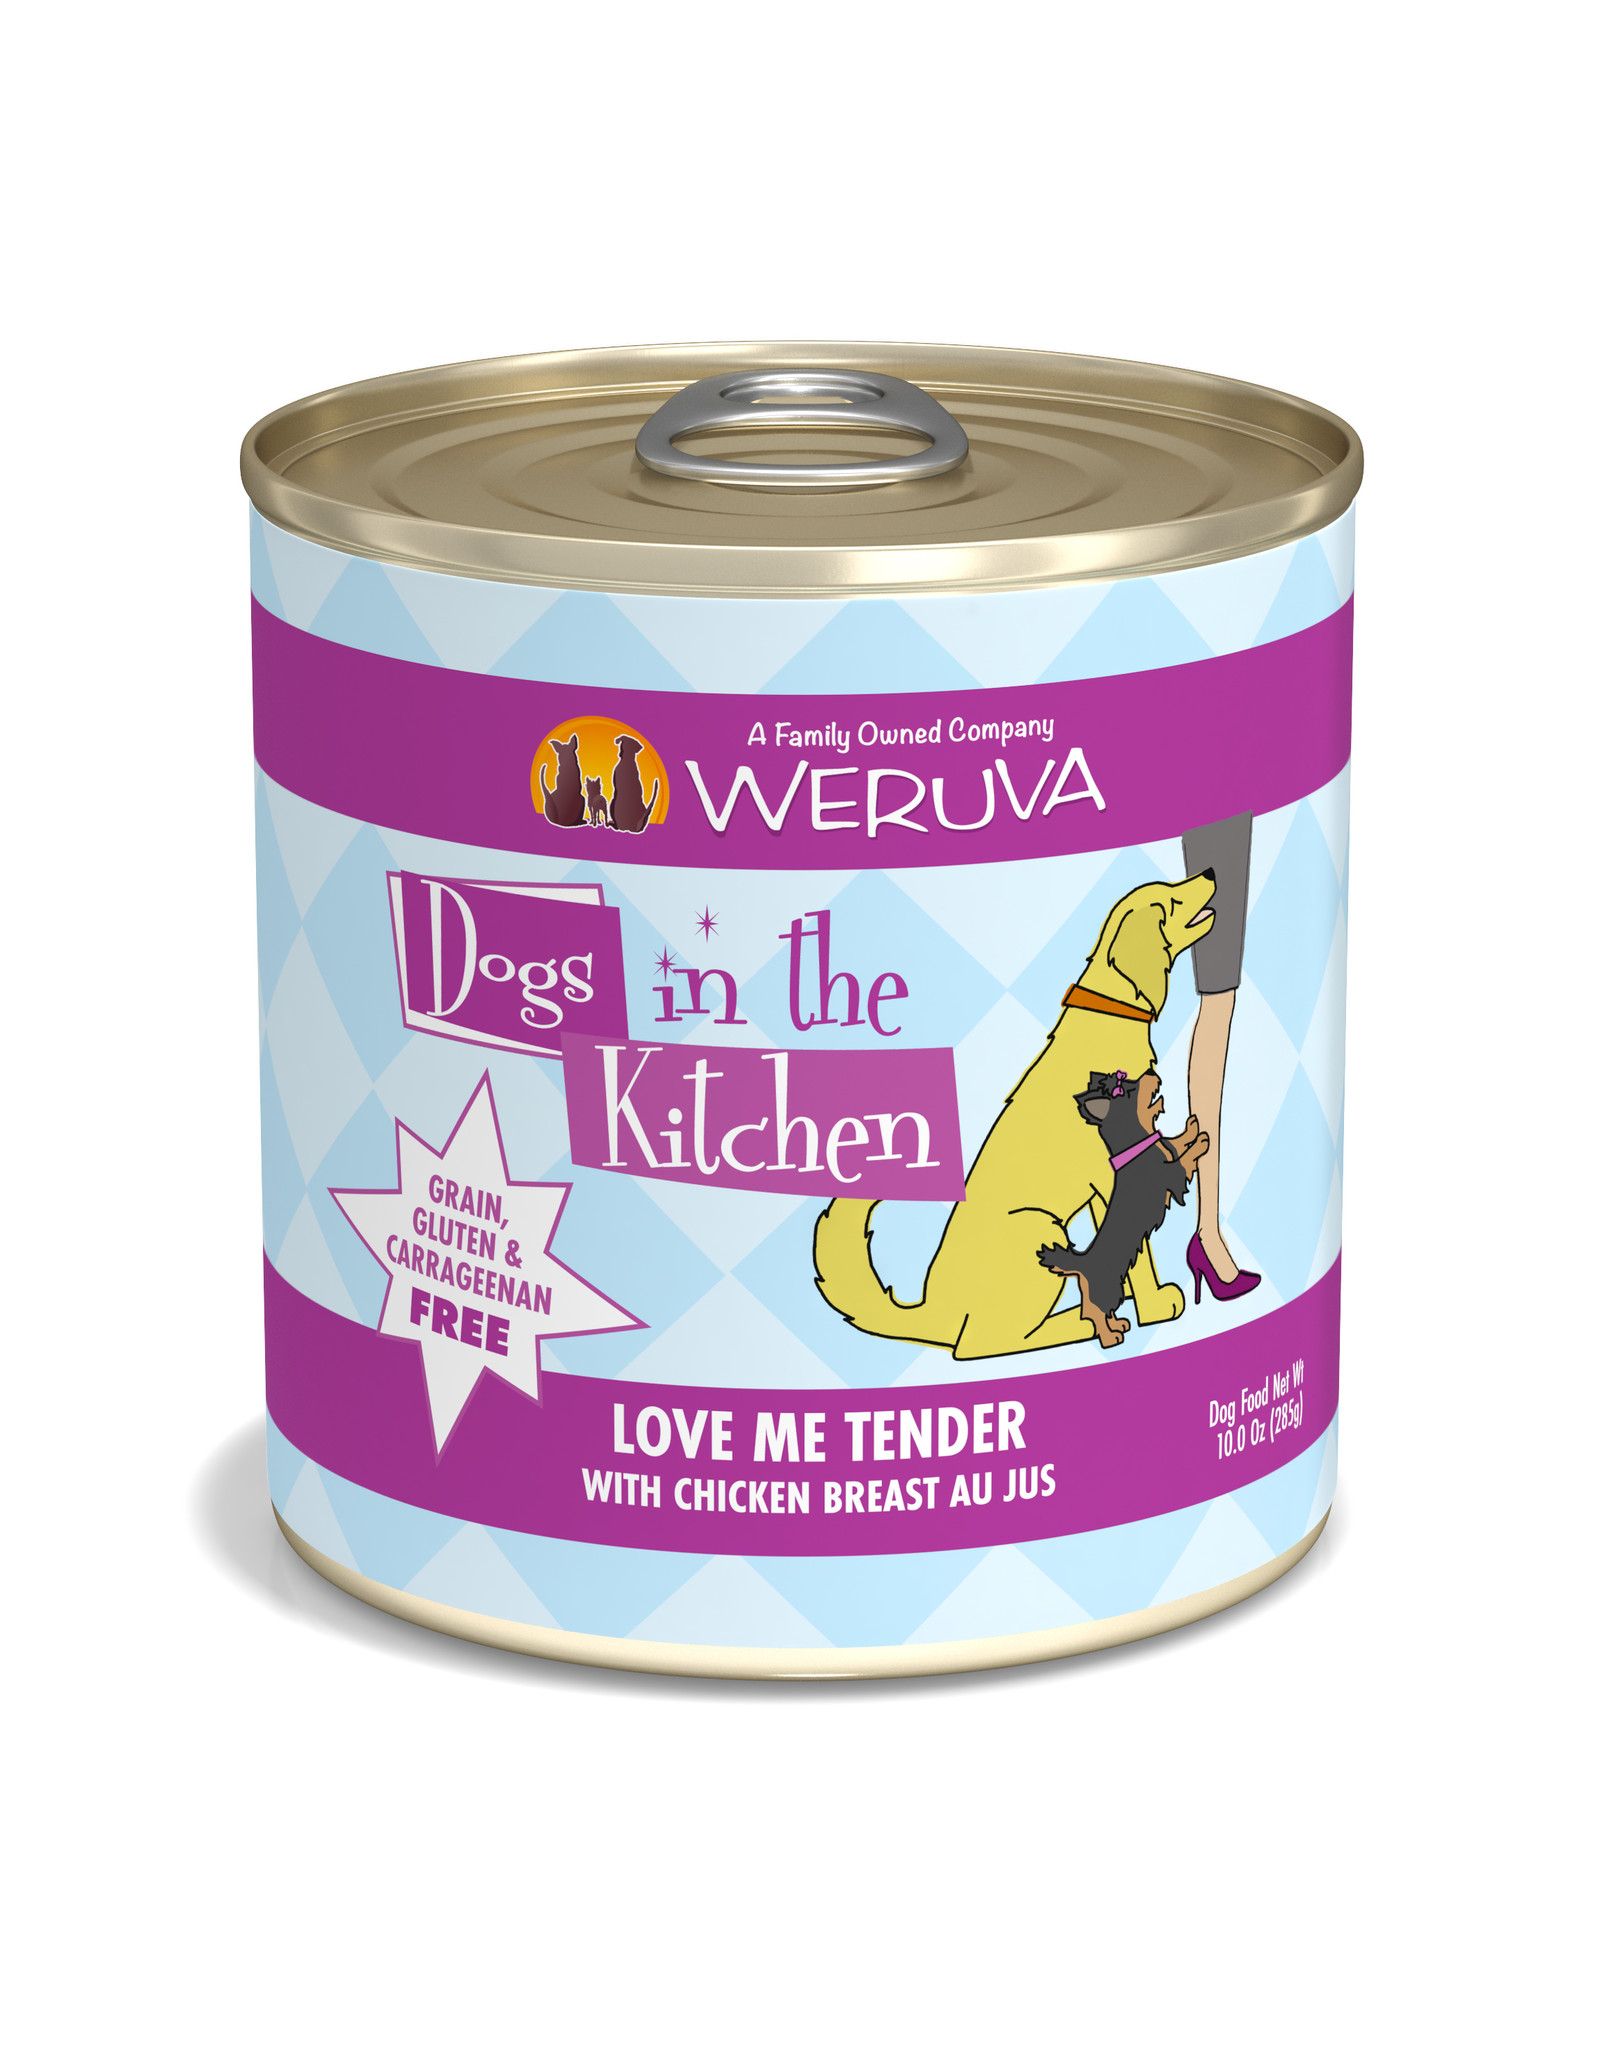 Weruva WERUVA DOG DOGS IN THE KITCHEN LOVE ME TENDER WITH CHICKEN BREAST AU JUS 10OZ